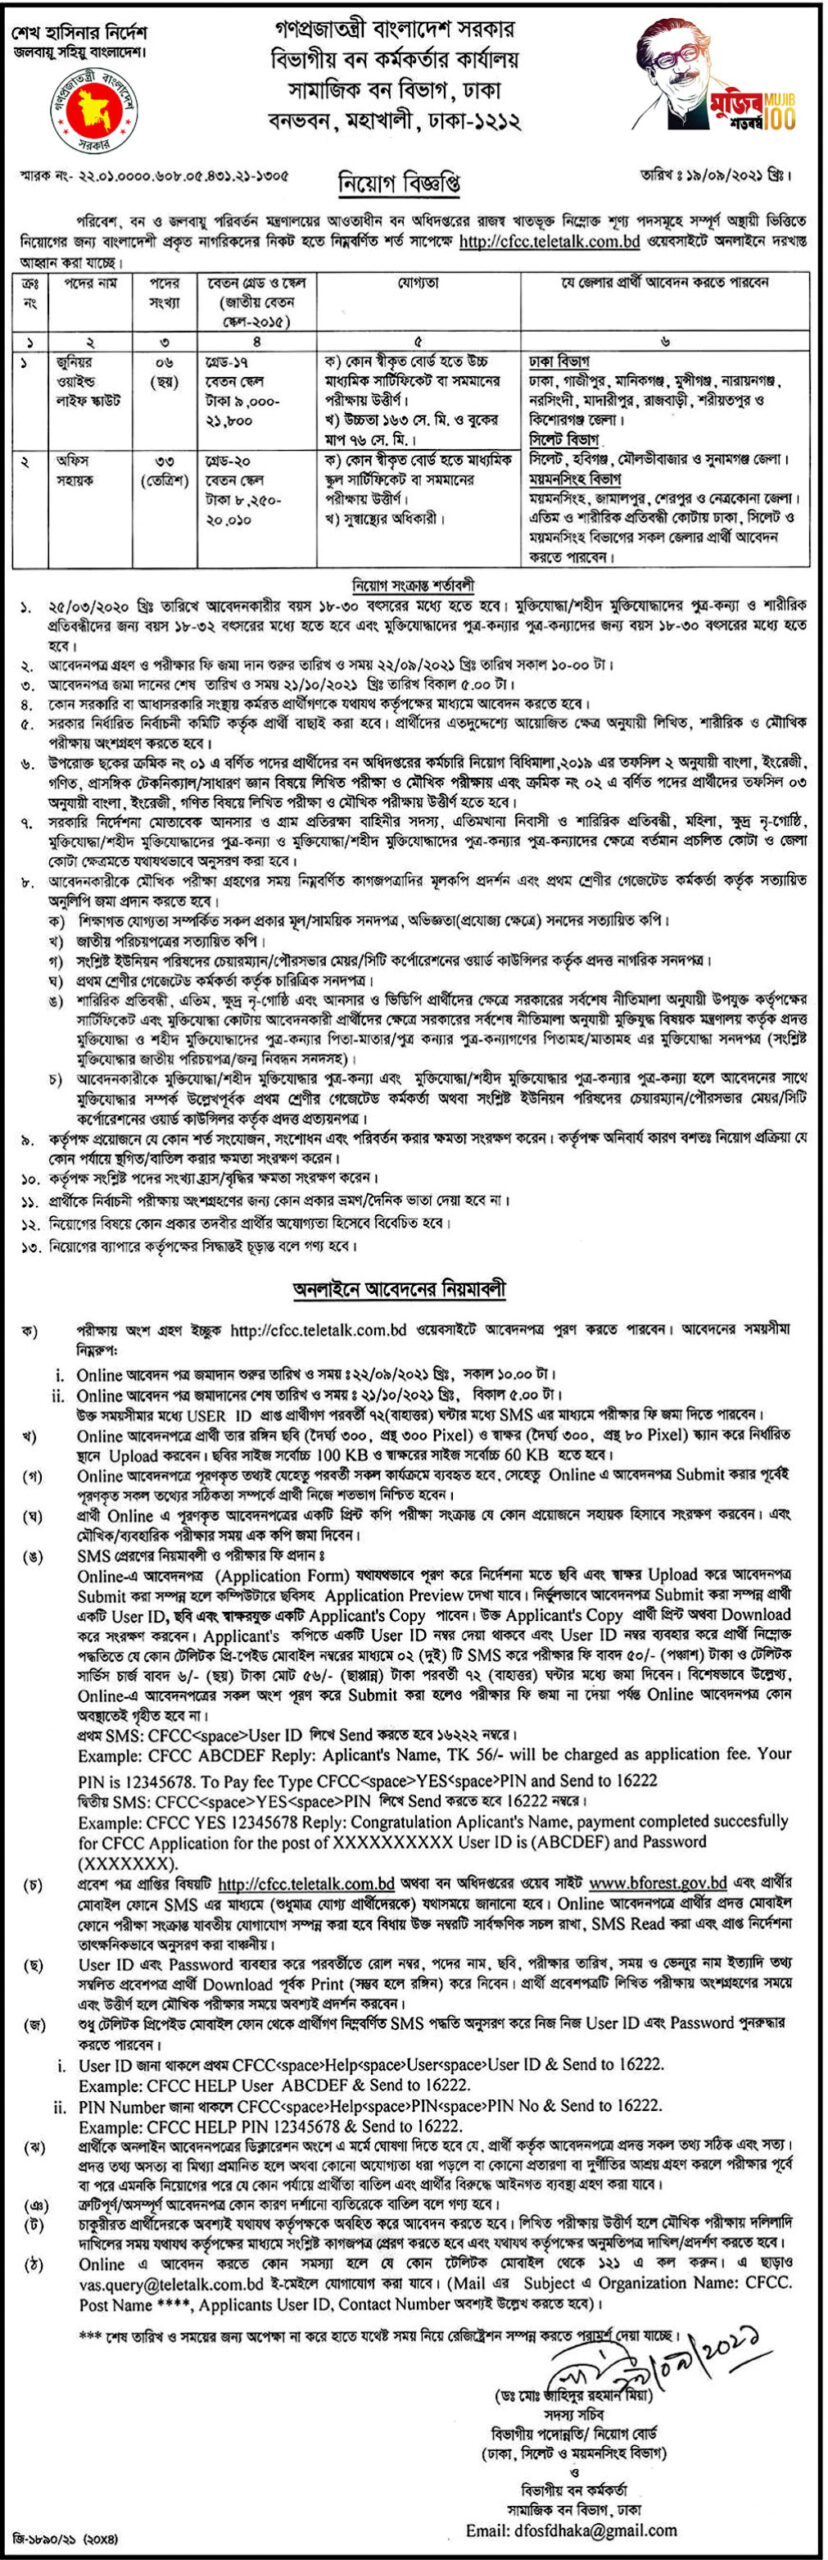 Ministry of Environment and Forests Job circular